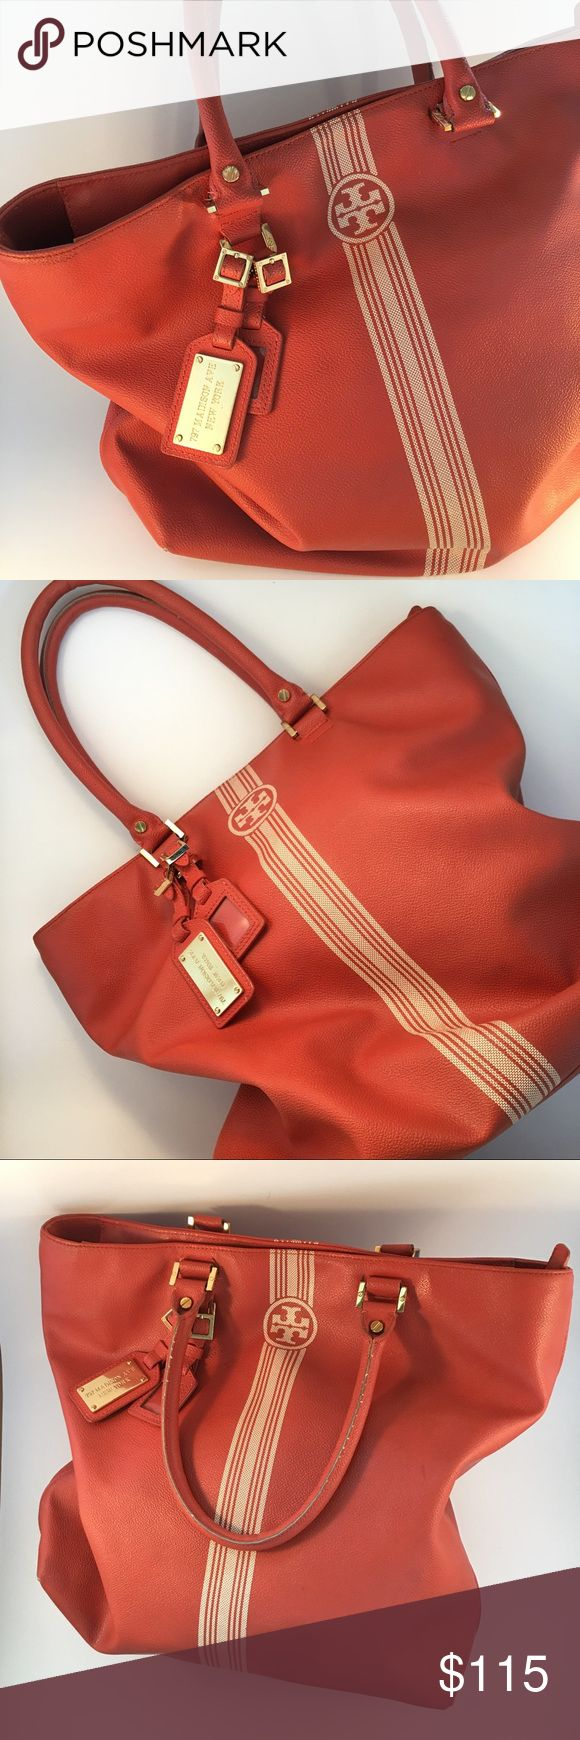 Authentic Tory Burch orange Tote bag GUC Authentic Tory Burch orange leather tote bag. Tan and gold accents. GUC. Shows slight wear and a few pen markings on the bottom of the lining on the inside (pictured). Beautiful bag, great color for late summer/early fall! Tory Burch Bags Totes